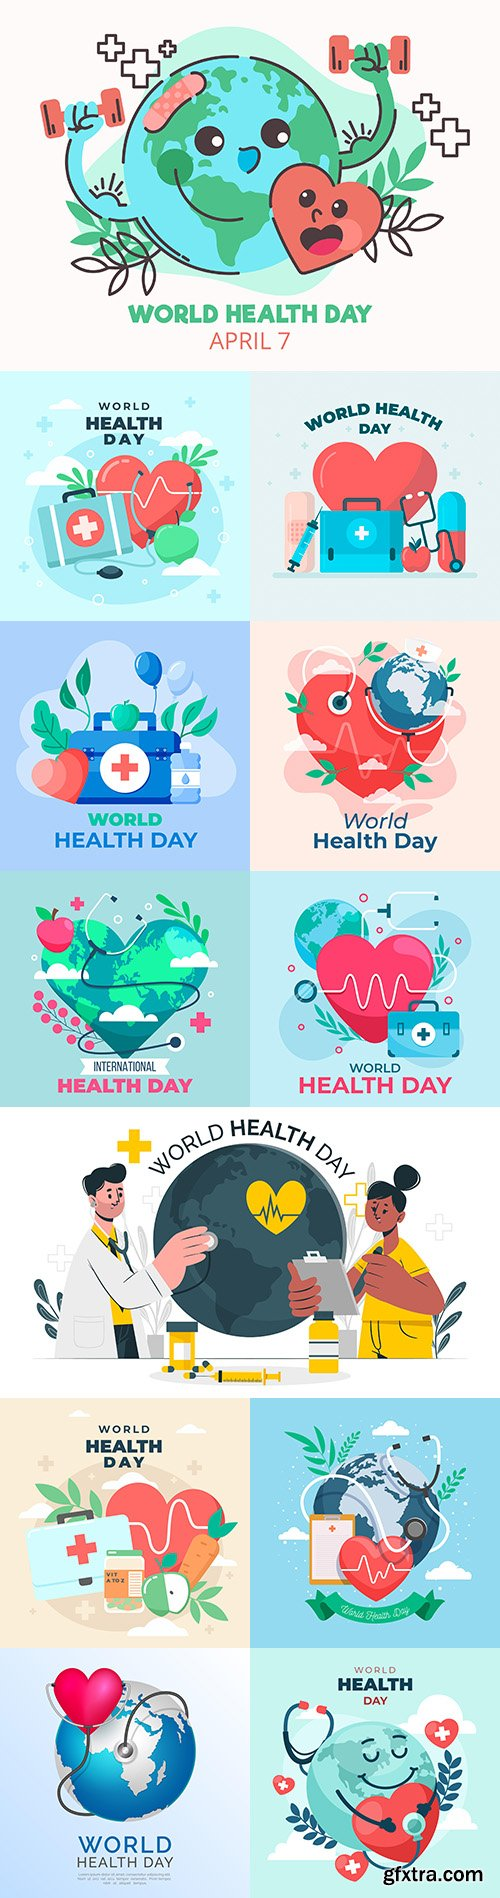 World health day with planet and heart illustration flat design